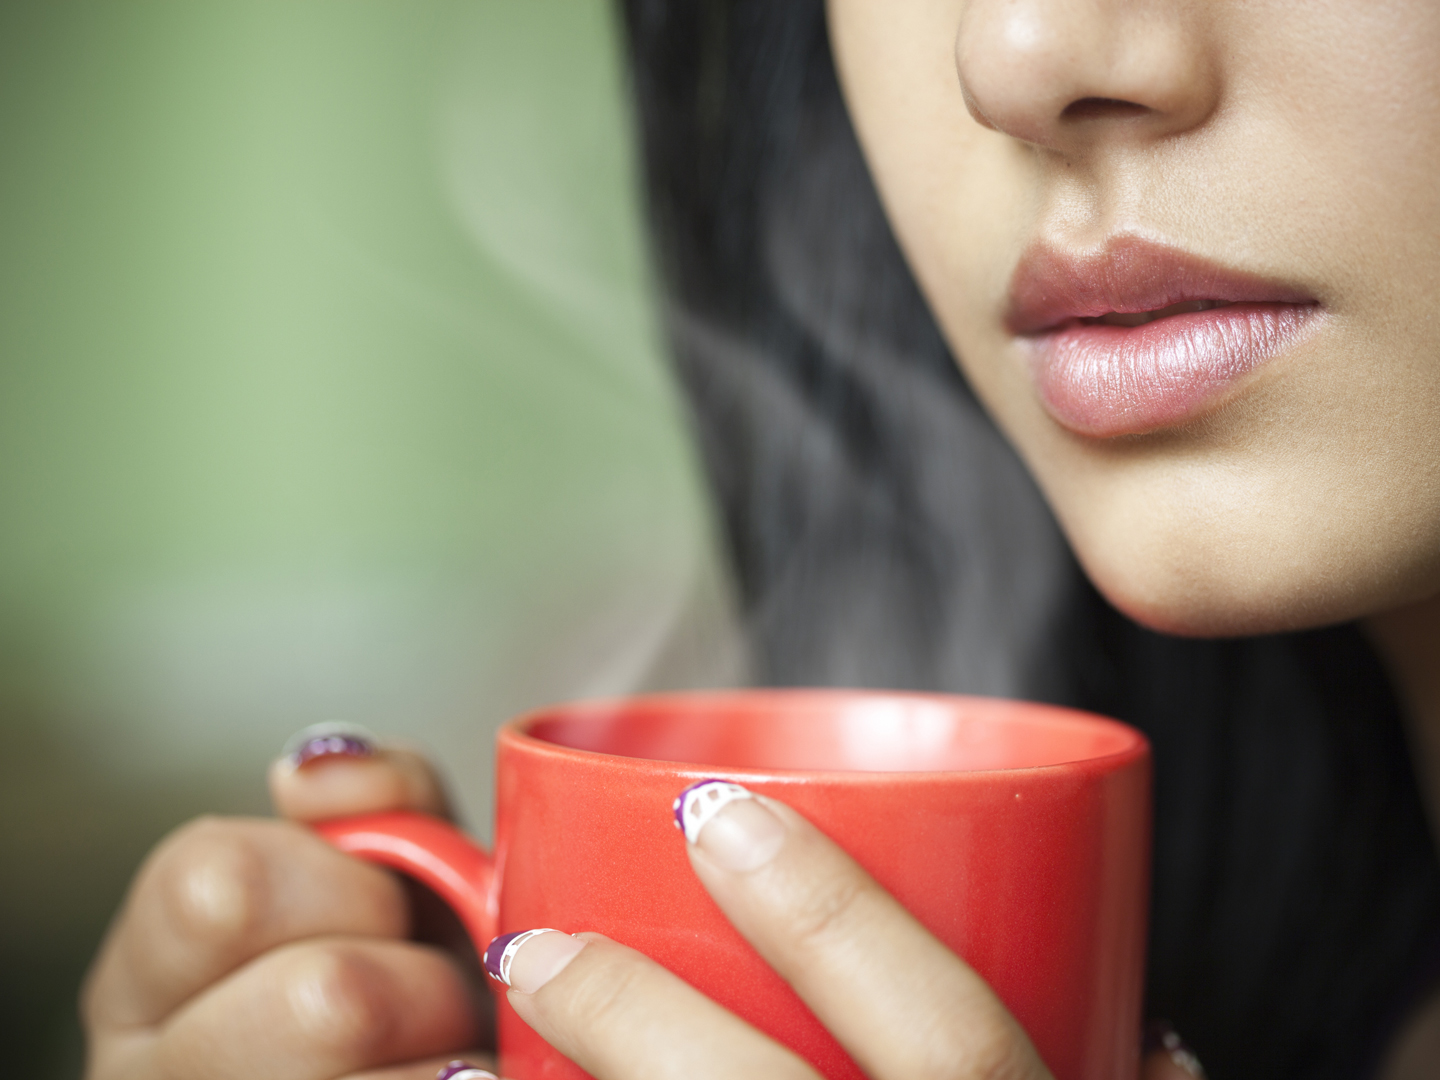 Indoor cropped close-up image of a beautiful Asian young woman holding a hot steaming coffee mug. One person, horizontal composition with selective focus and copy space.